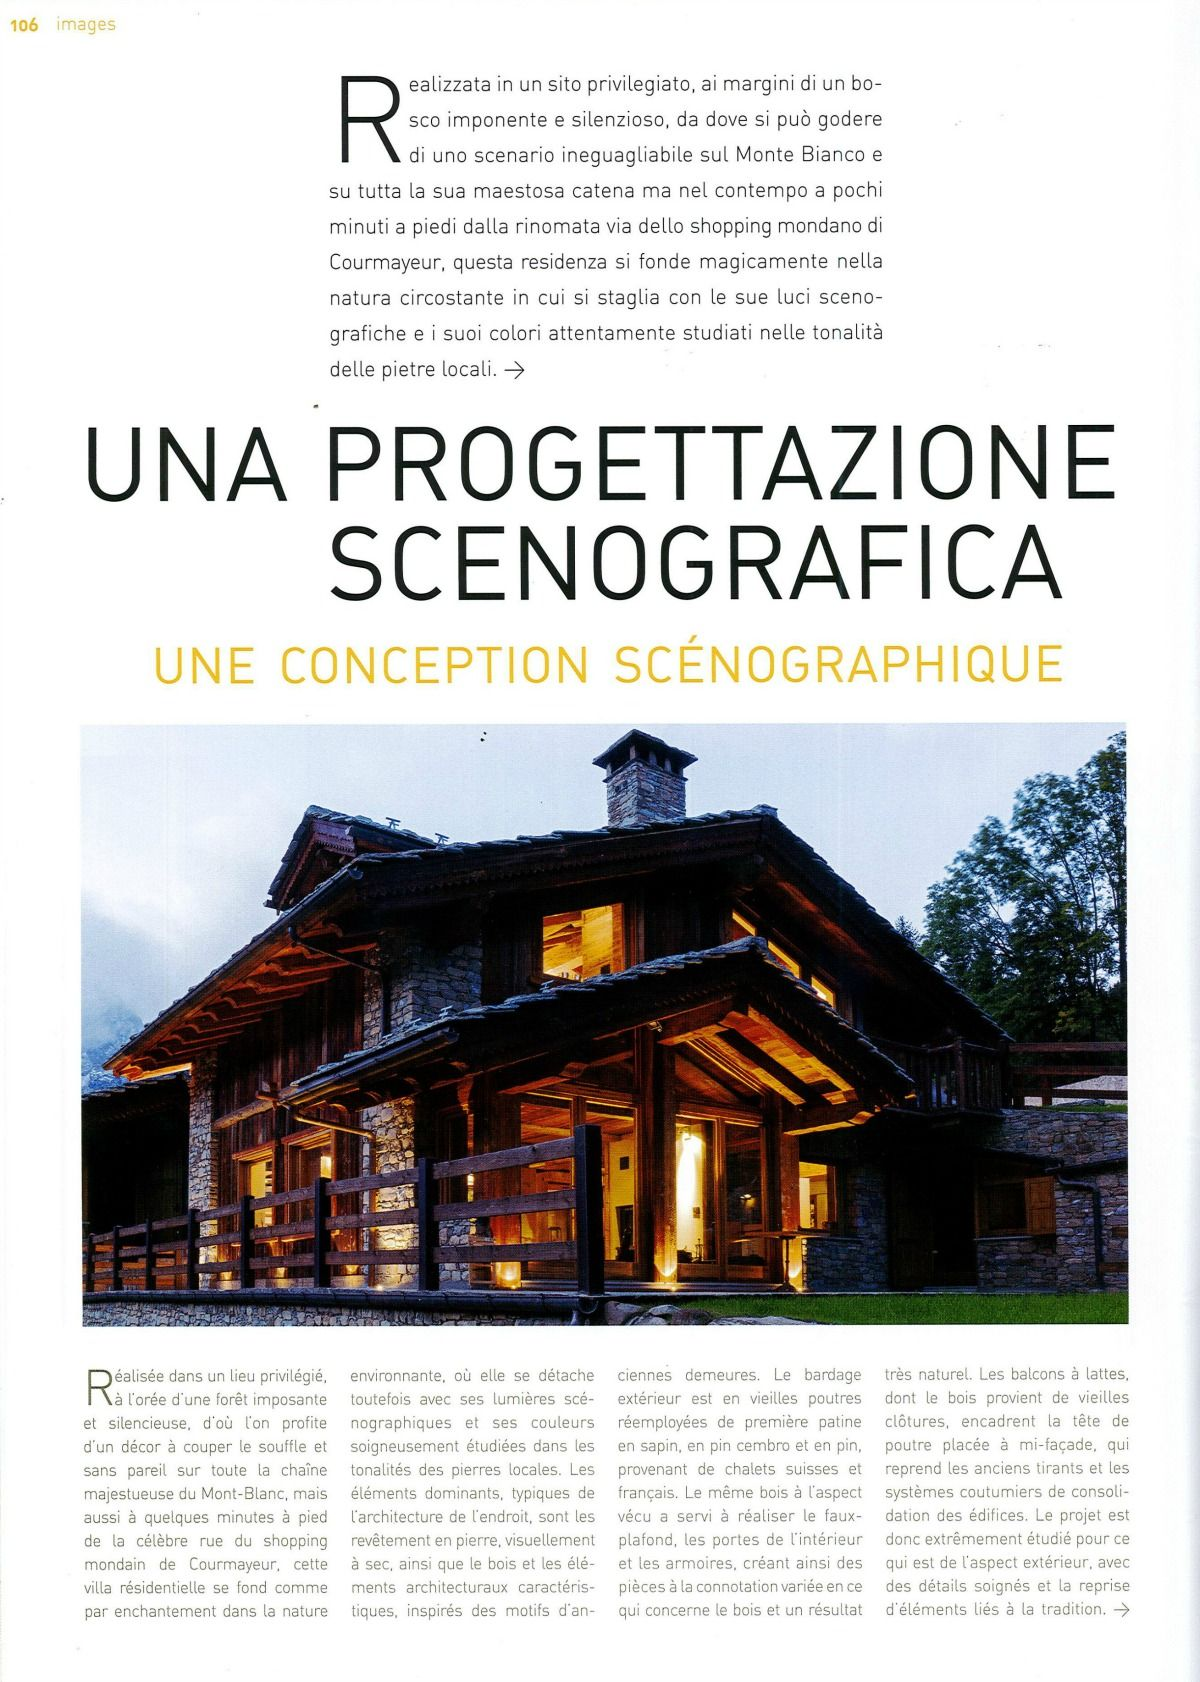 Images estate 2016 - pagina 1